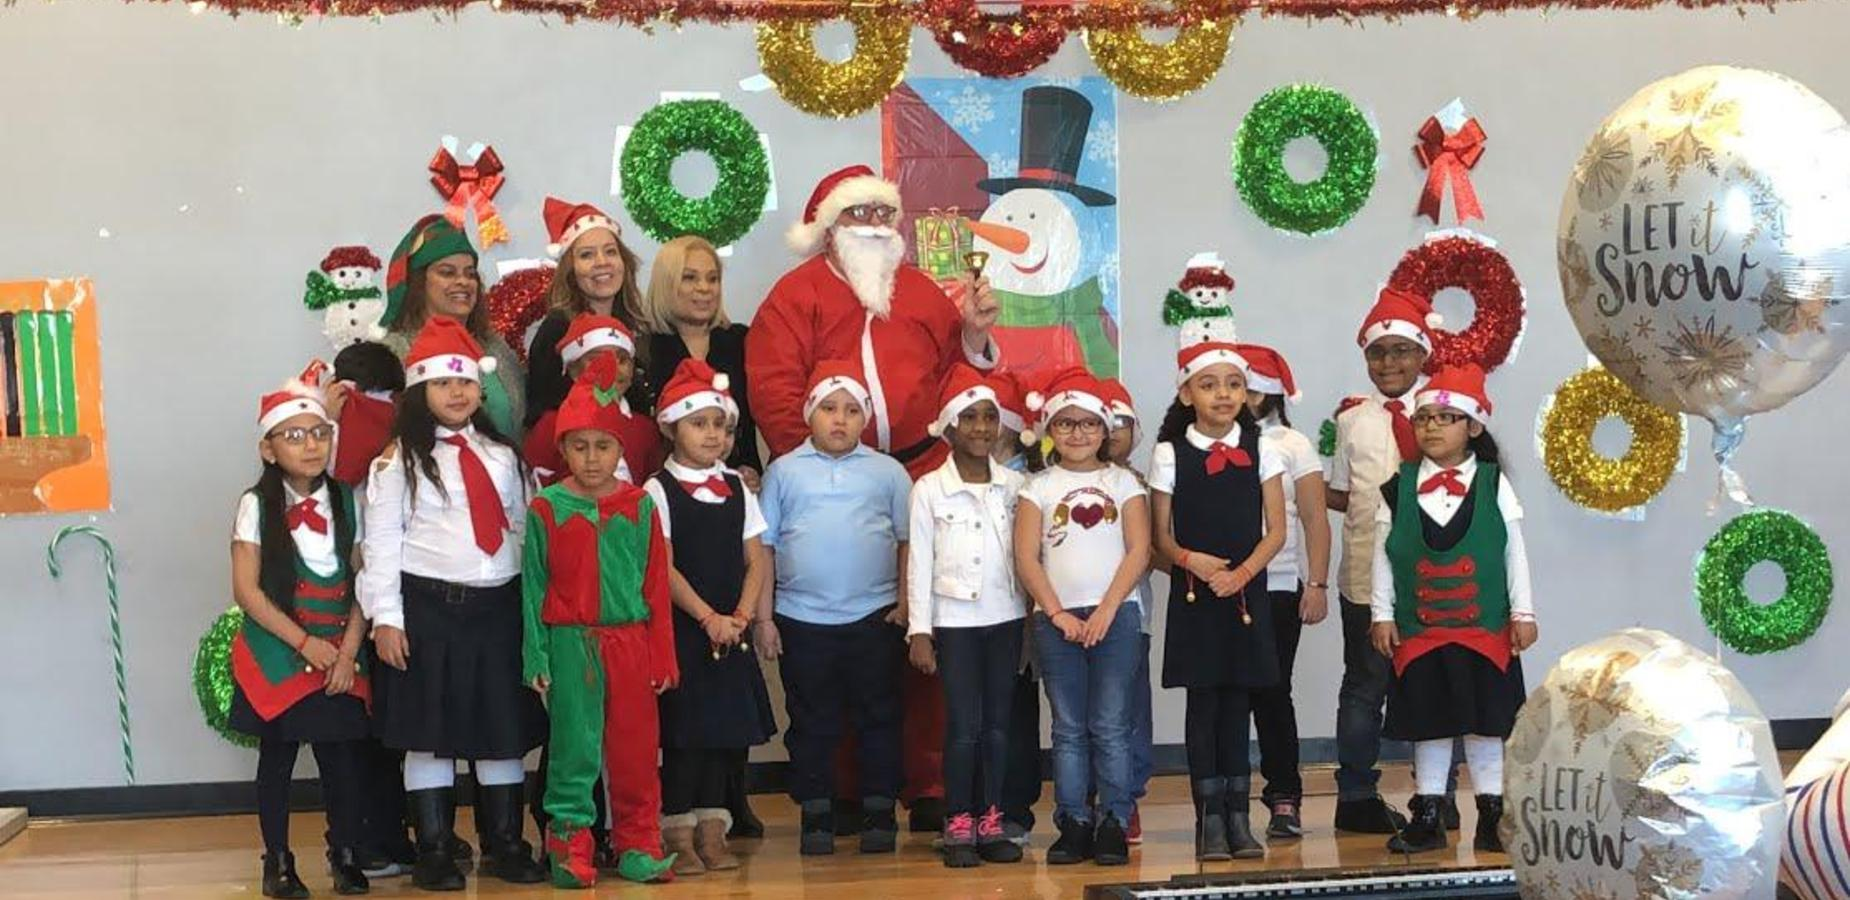 Student of the Month Celebrants on stage with Santa Claus - December 2018